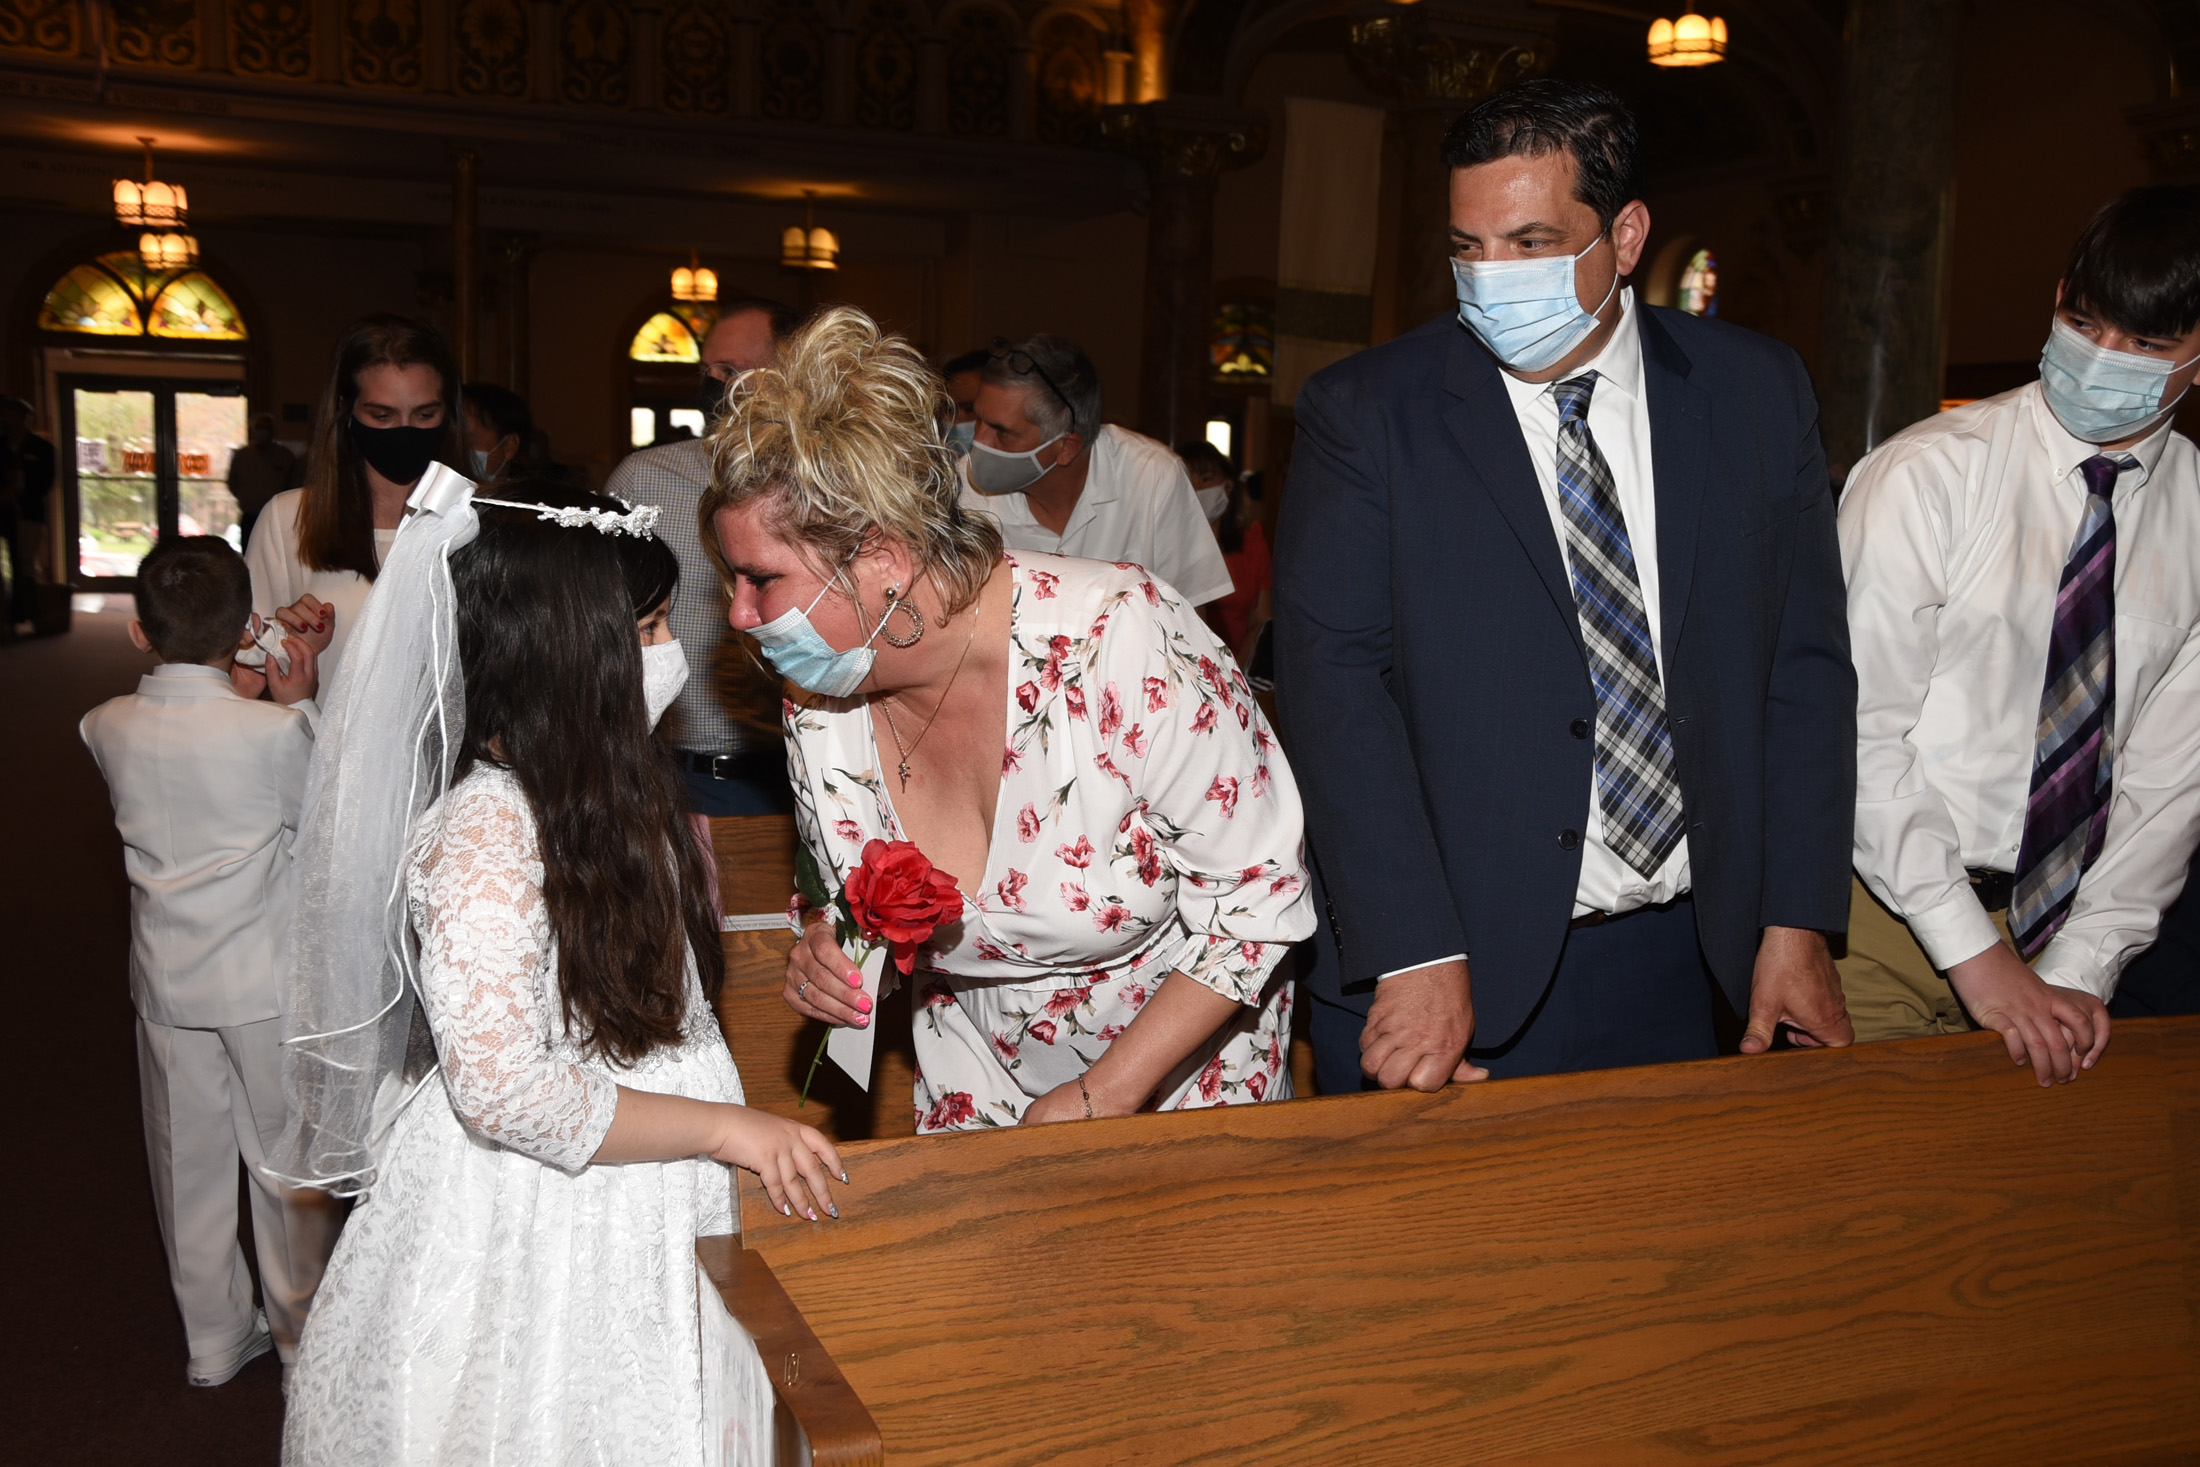 FIRST-COMMUNION-MAY-2-2021-1001001098